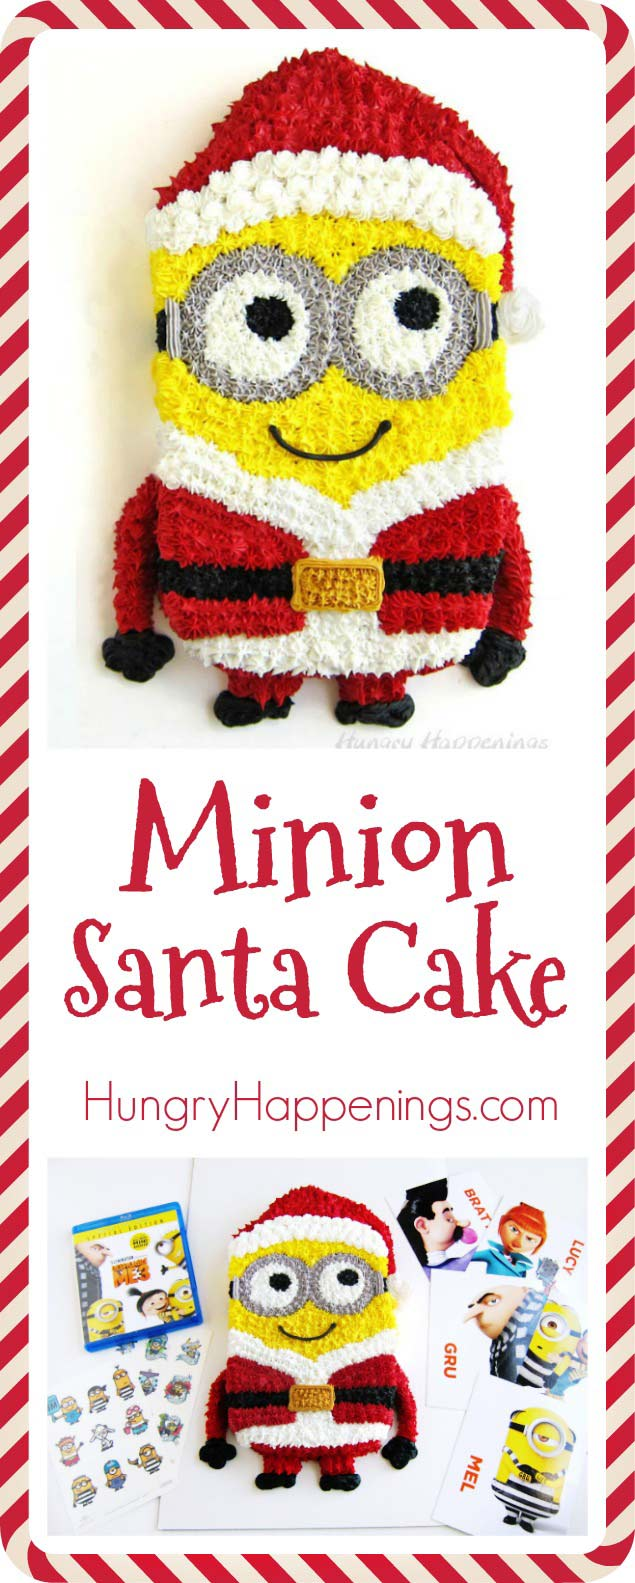 To celebrate the December 5th Blu-ray and DVD release of Despicable Me 3 Special Edition, this year's #1 animated movie, make an adorable Minion Santa Cake and curl up for a night of laughs with your family and friends. #DespicableMe3 #DM3family #ad